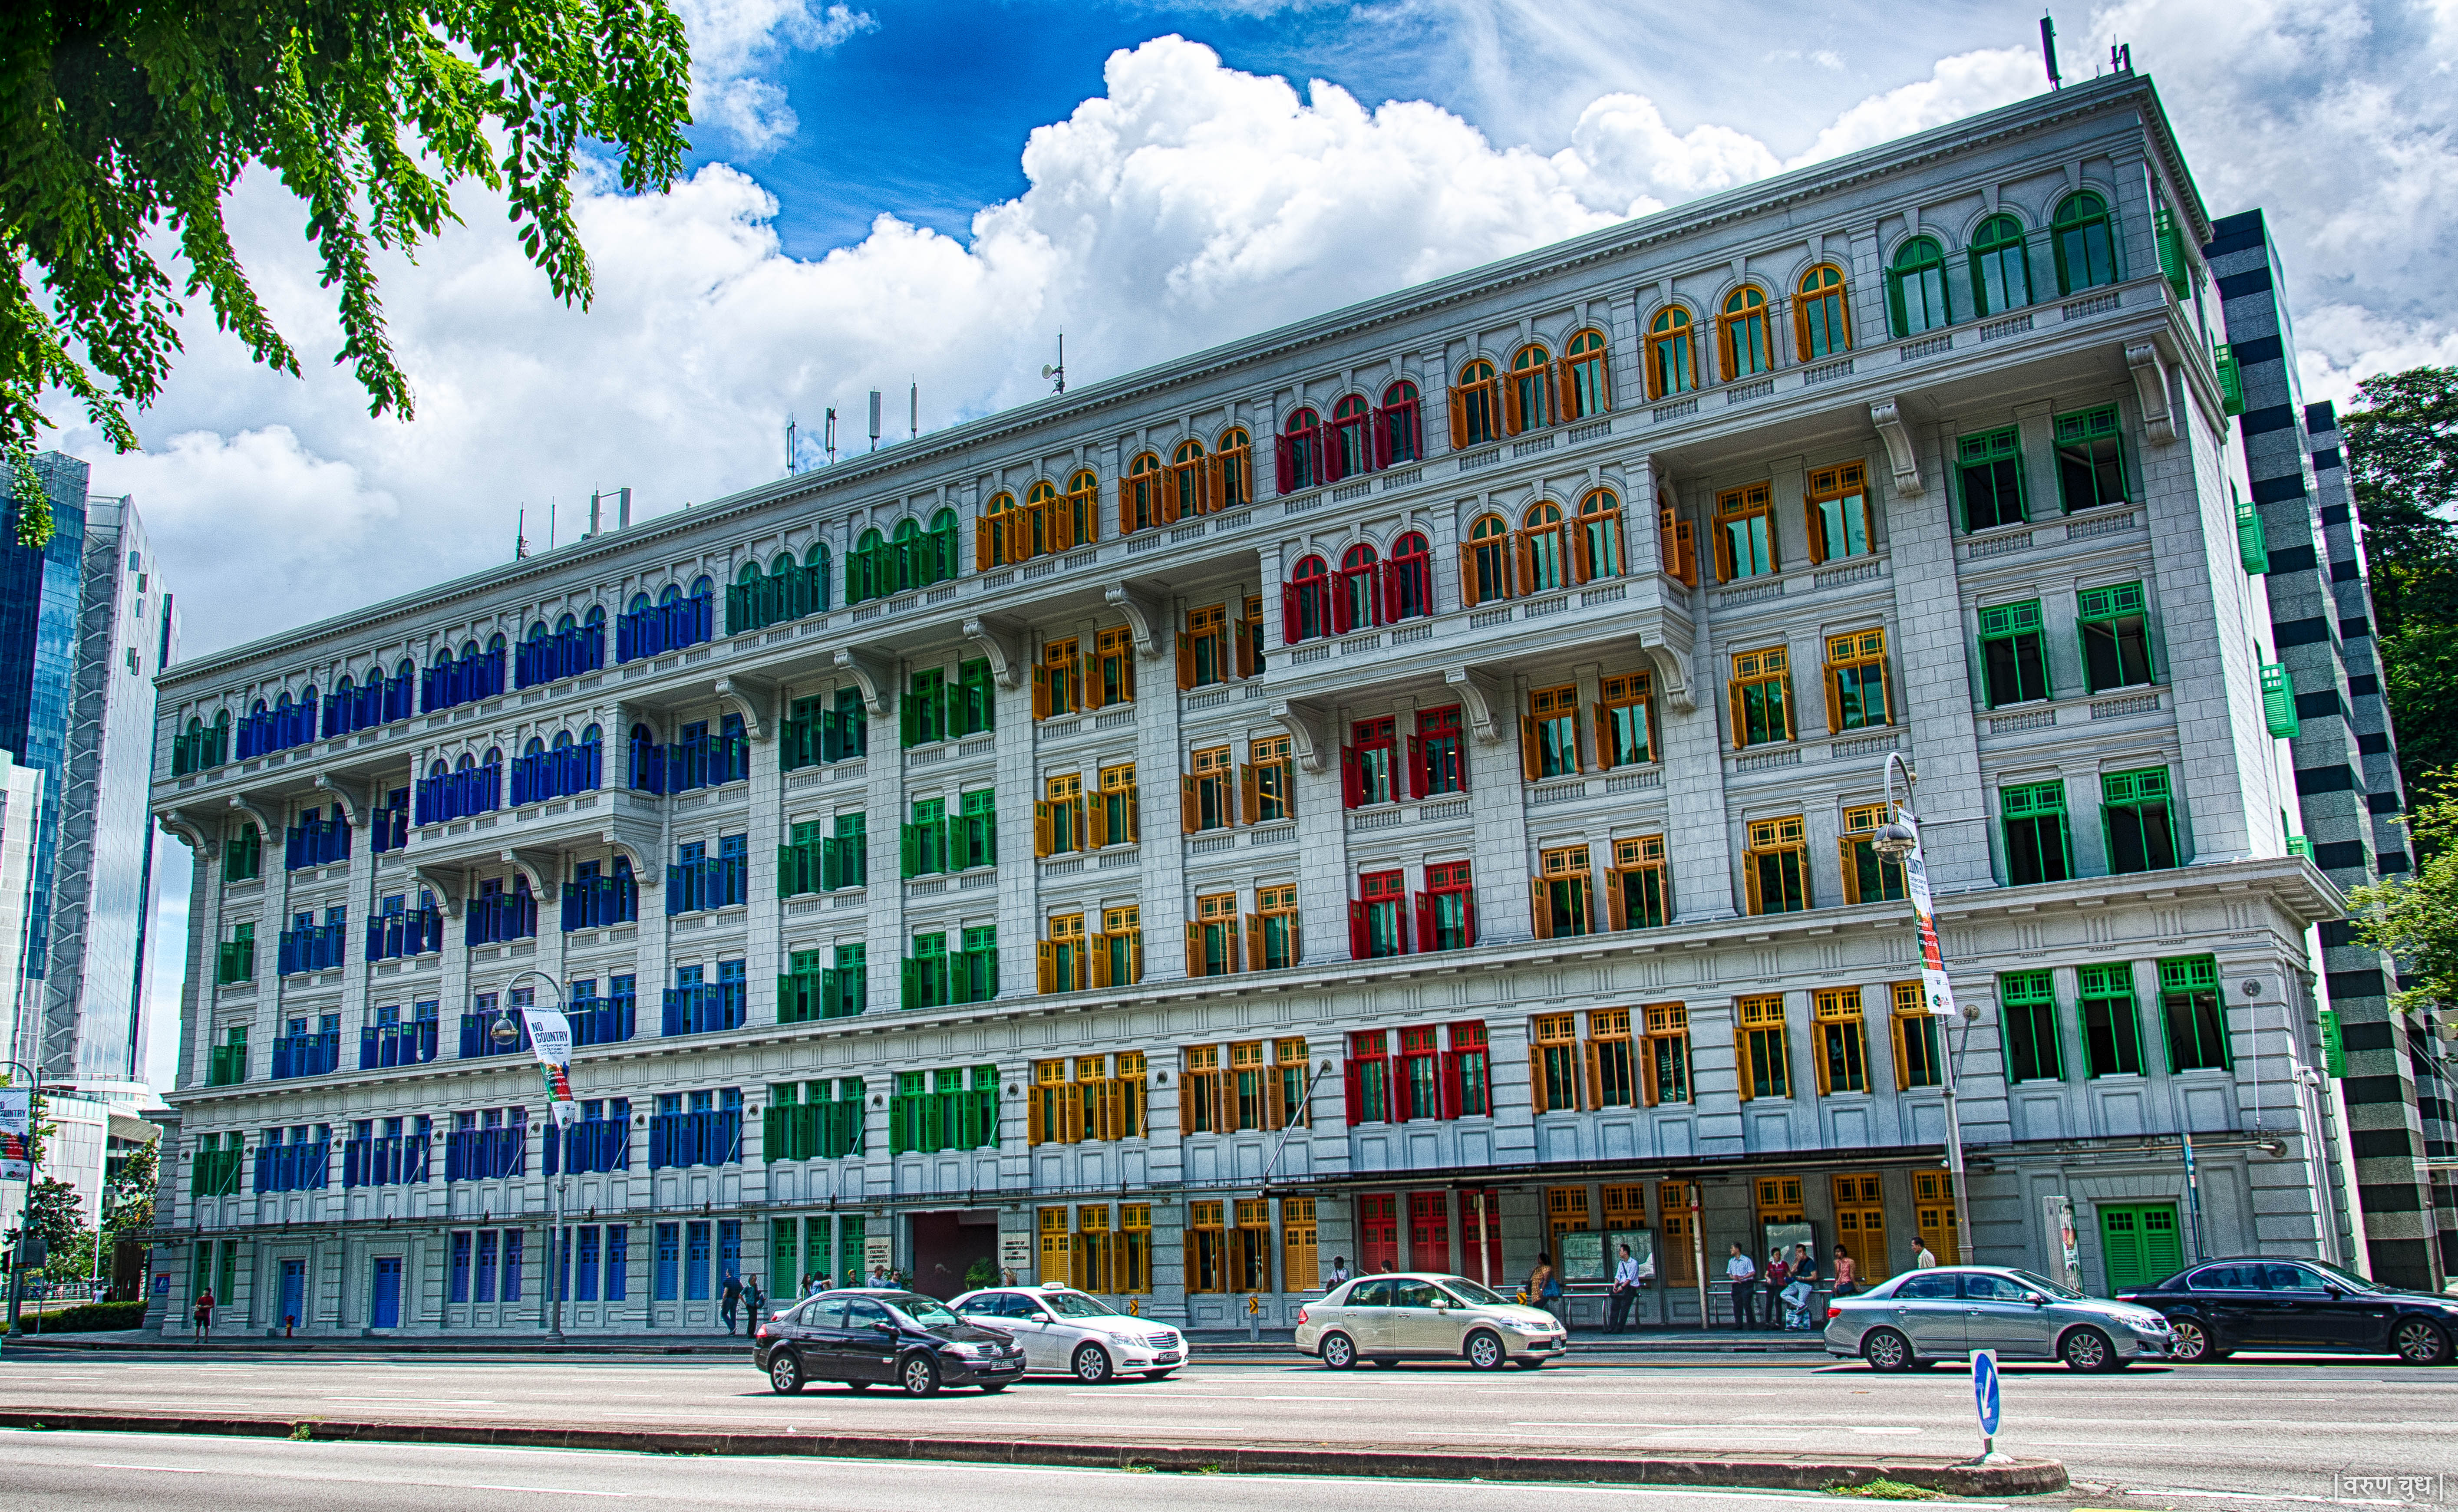 MICA Building, Novotel, Clarke Quay, Singapore, Hill St, Hill Street